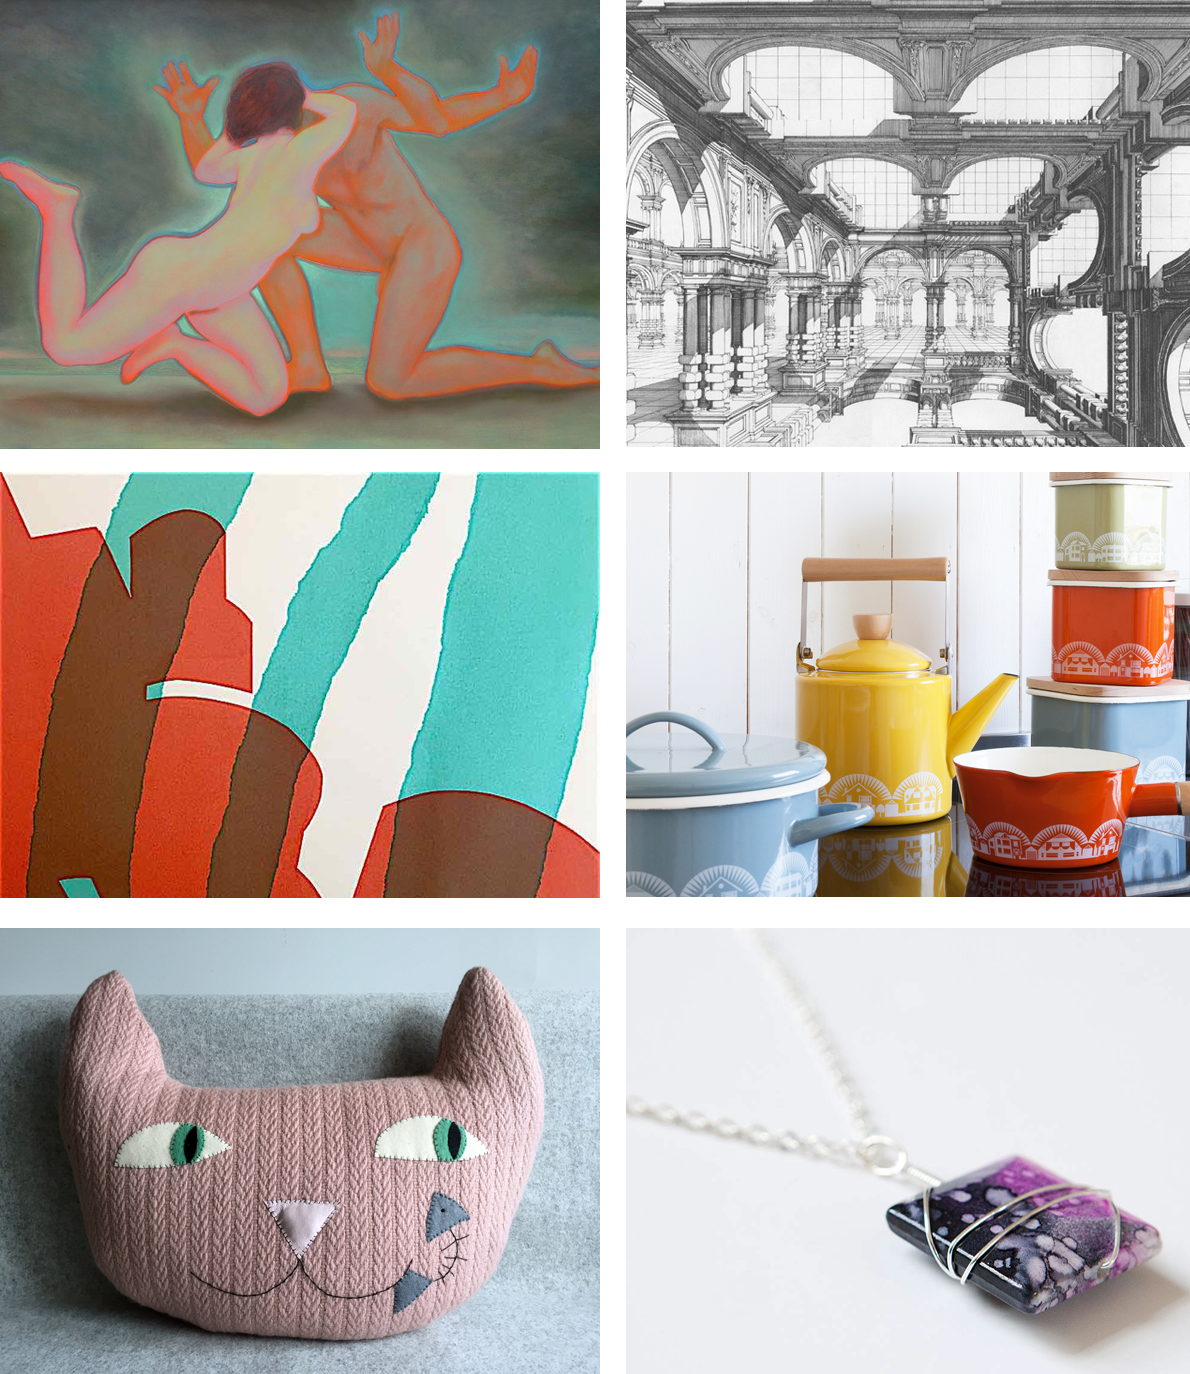 fine artists Emanuele Gori and Paul Draper, printmaker Pauline Amphlett, homewares by Mini Moderns, interior products by Mr & Mrs House and Norwegian crafts by Smed